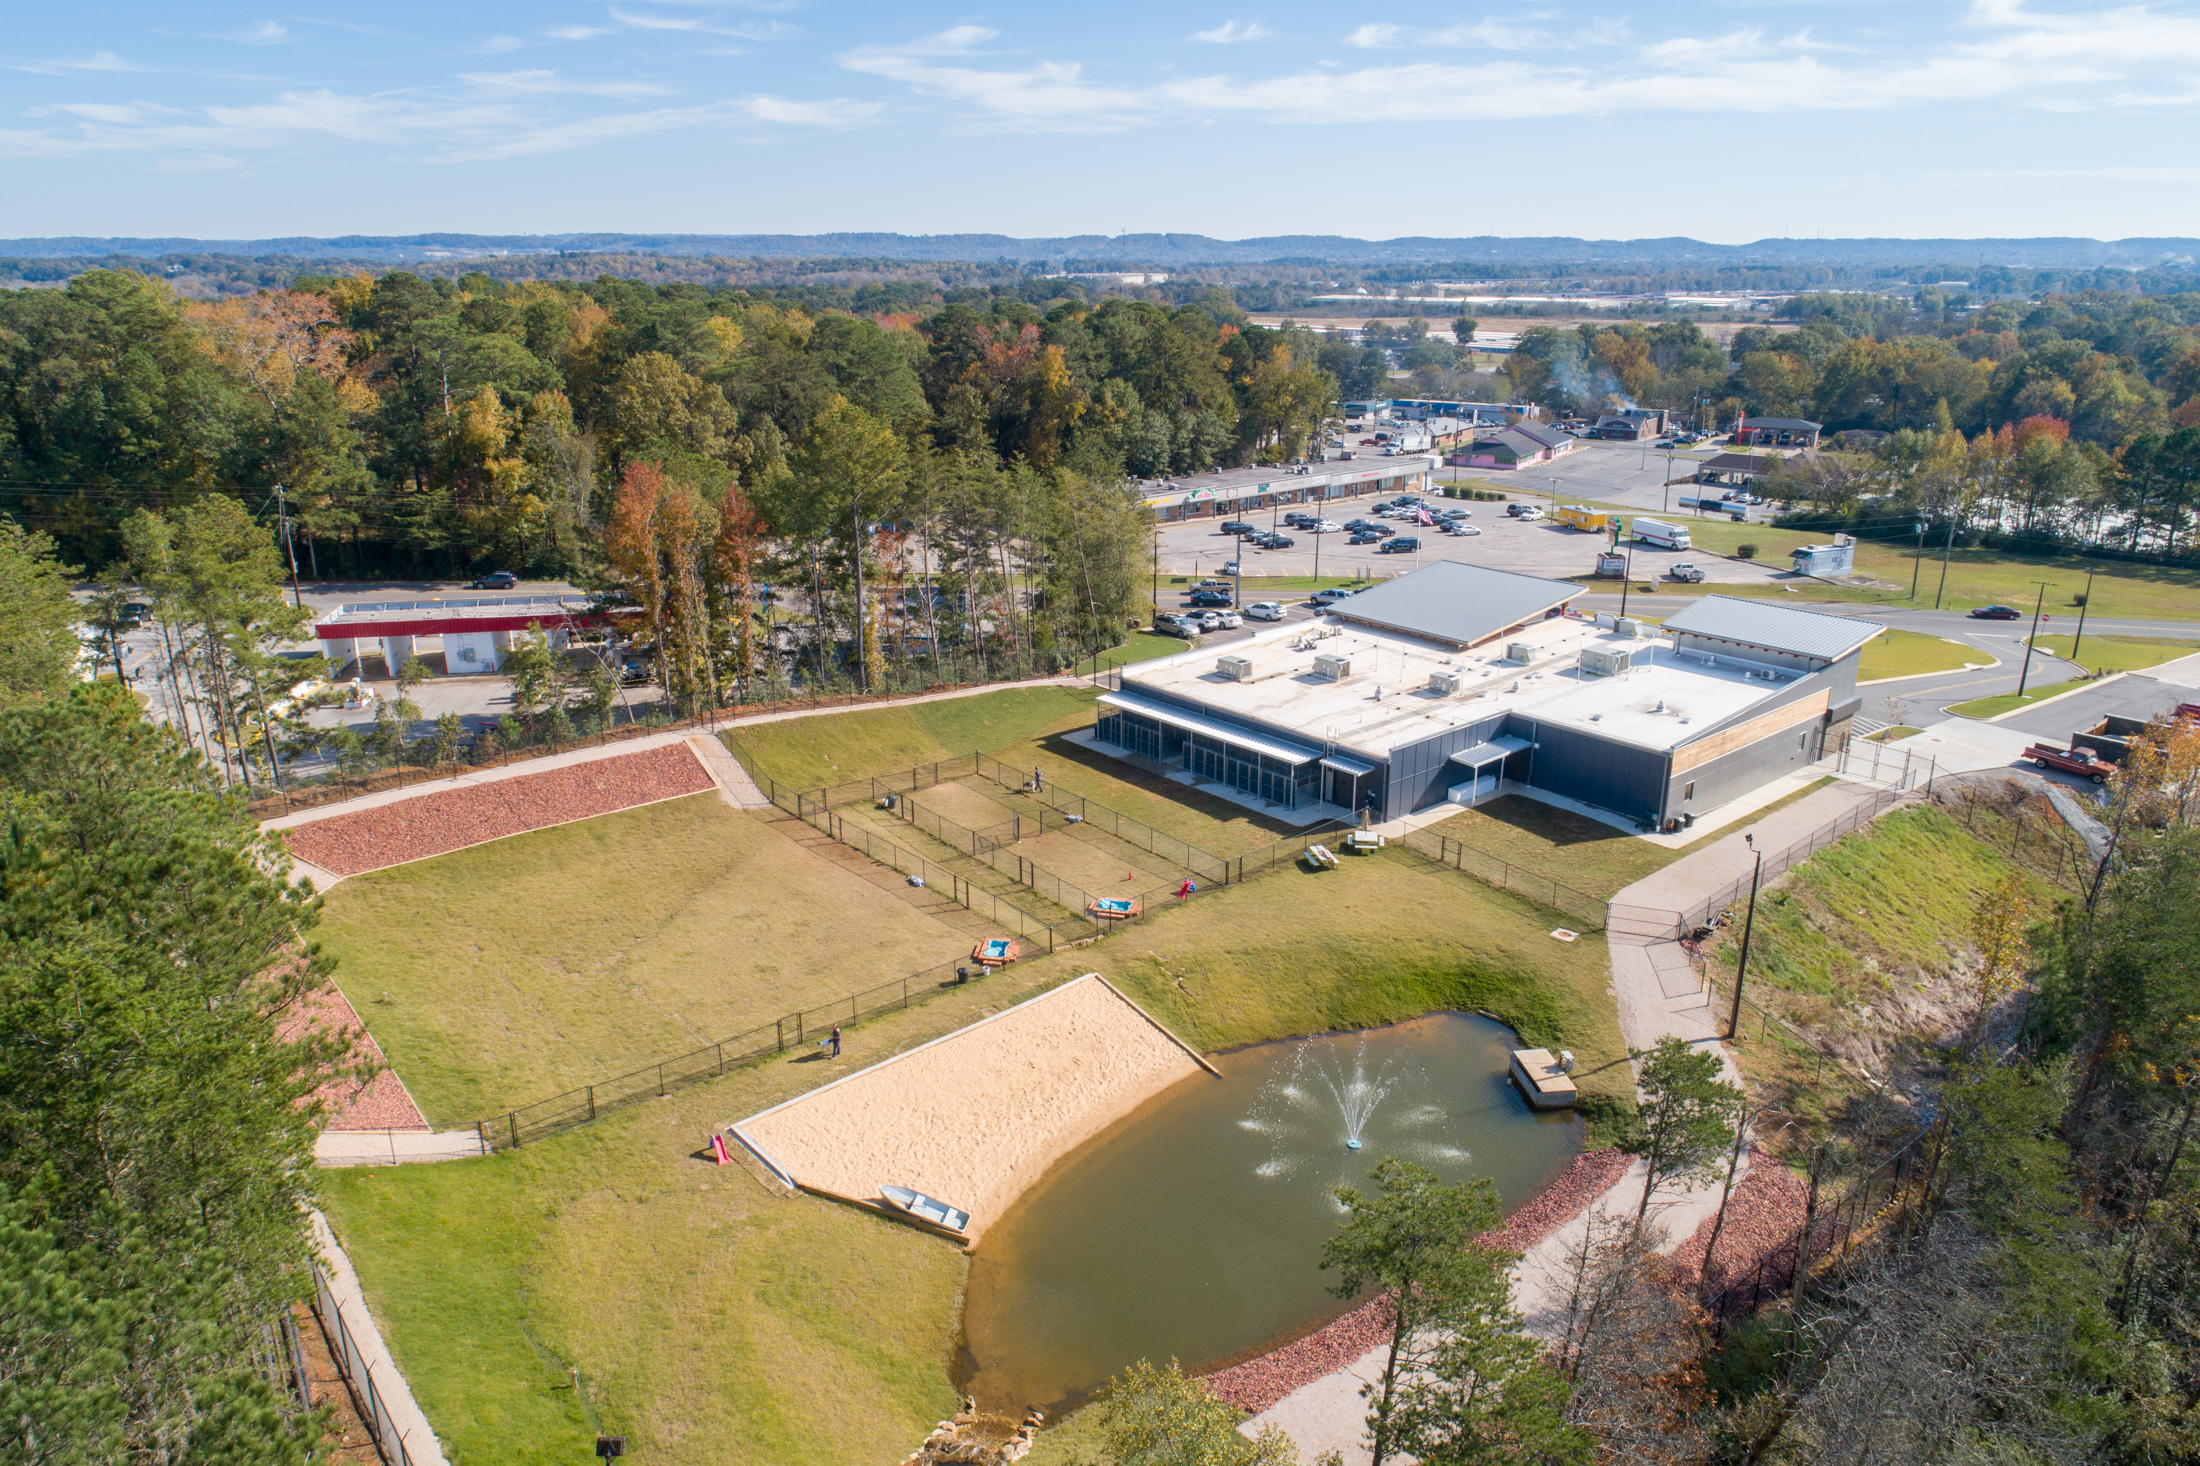 cullman-aerial-real-estate-photography (23 of 35).jpg